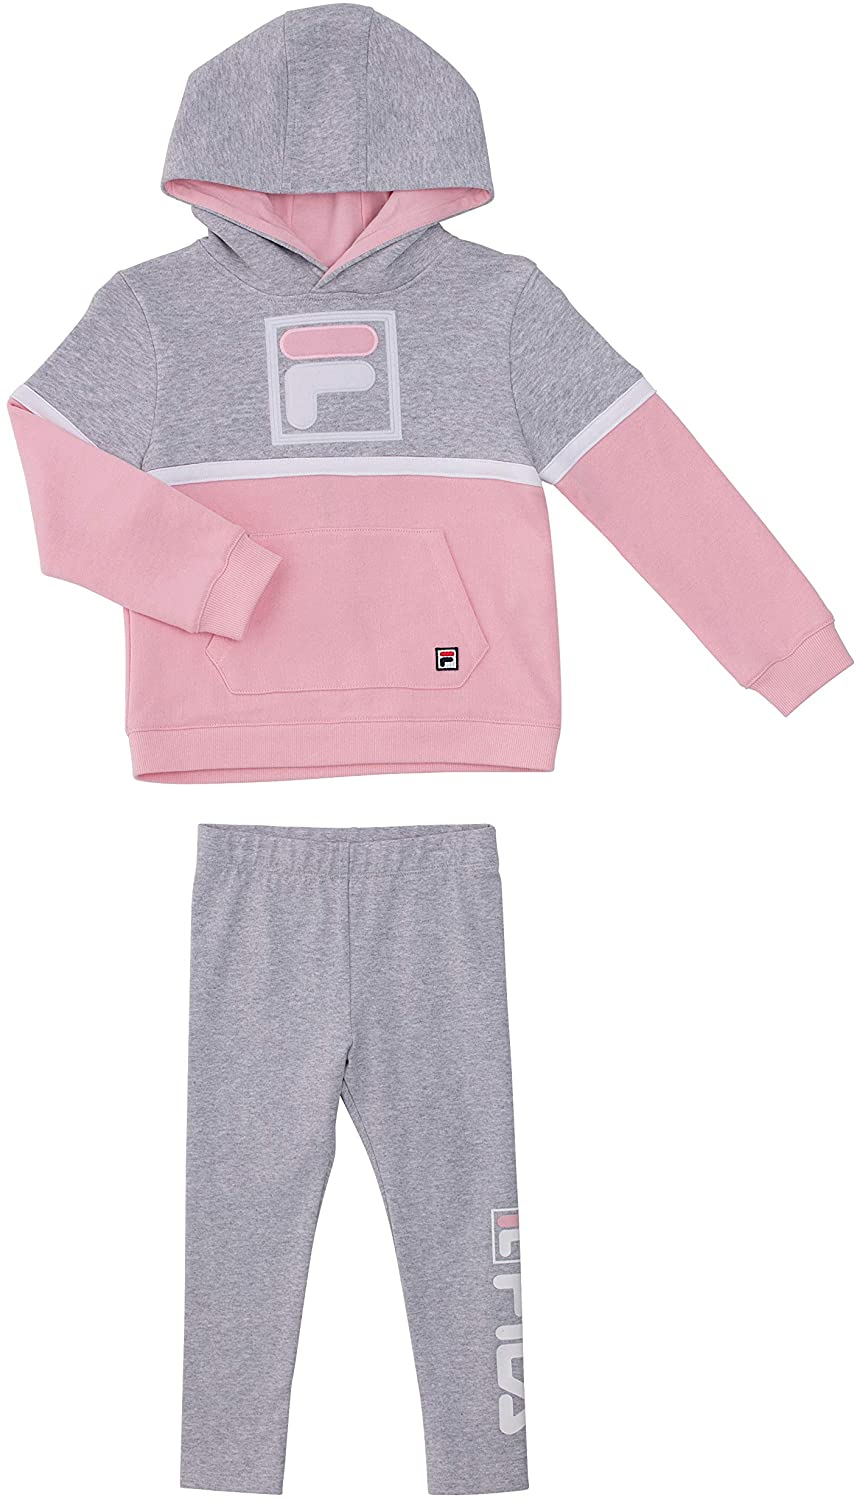 Fila Heritage Girls Two Piece Top and Legging Sets for Baby Girls Clothing